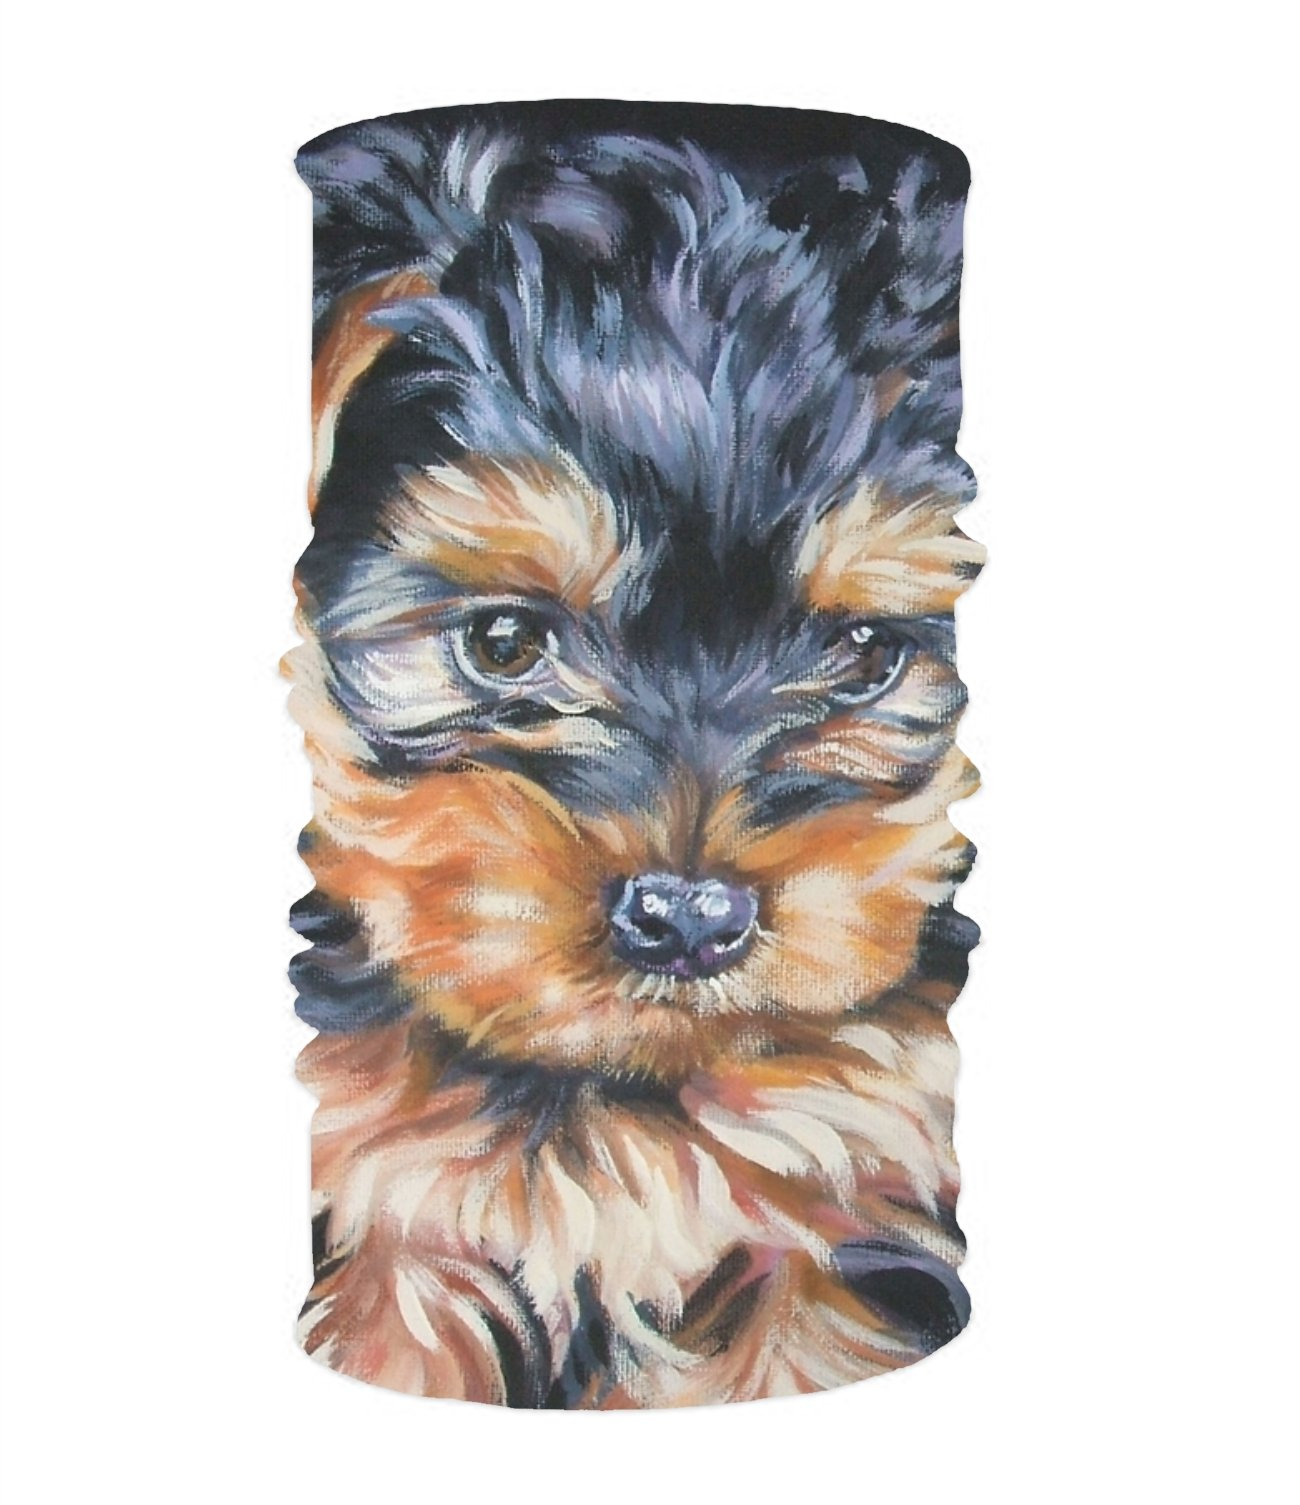 Efyh Little Yorkie Dog Magic Scarf Works As Face Scarf Neck Gaiter Headband Balaclava